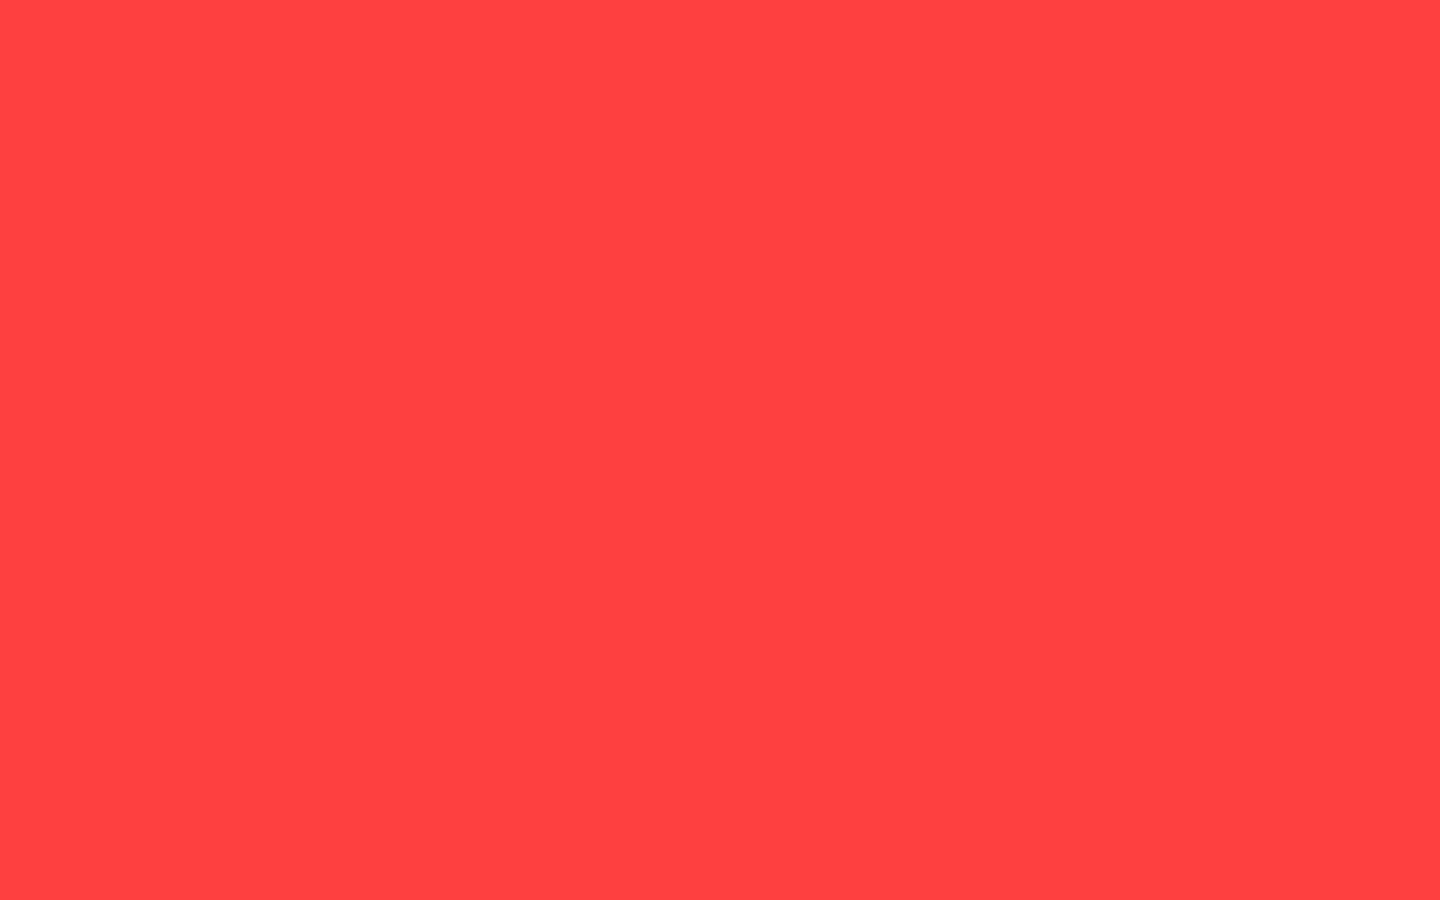 1440x900 Coral Red Solid Color Background